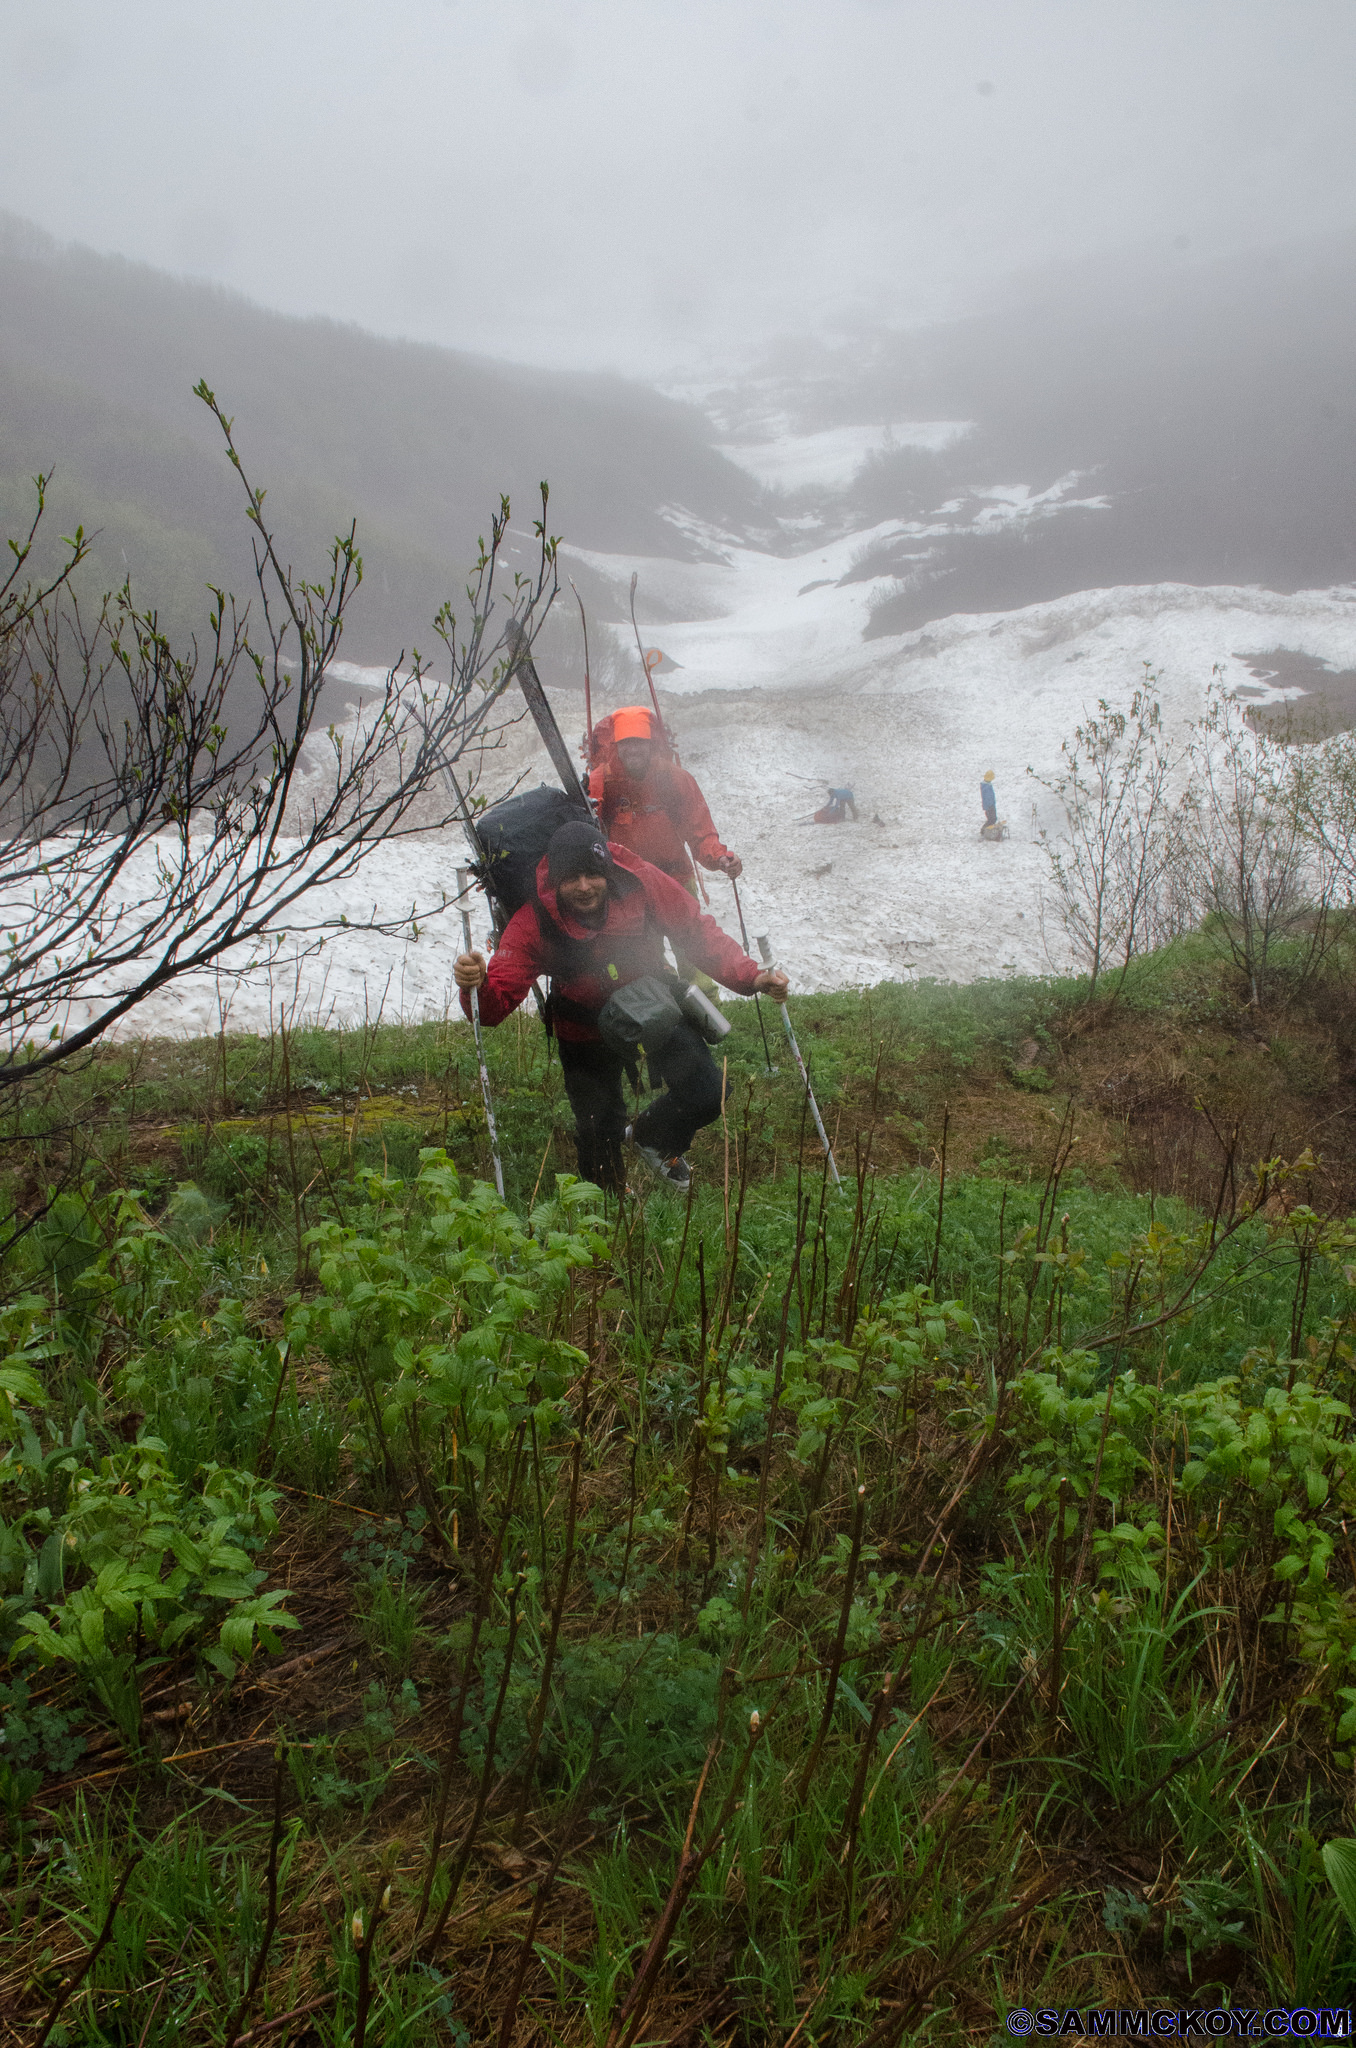 It might not fully be obvious but its raining hard. Notice the avalanche debris in the background. This was the only snow cover in the entire basin. Following this photo came some intense bushwacking where I couldn't muster any extra energy to take photos.